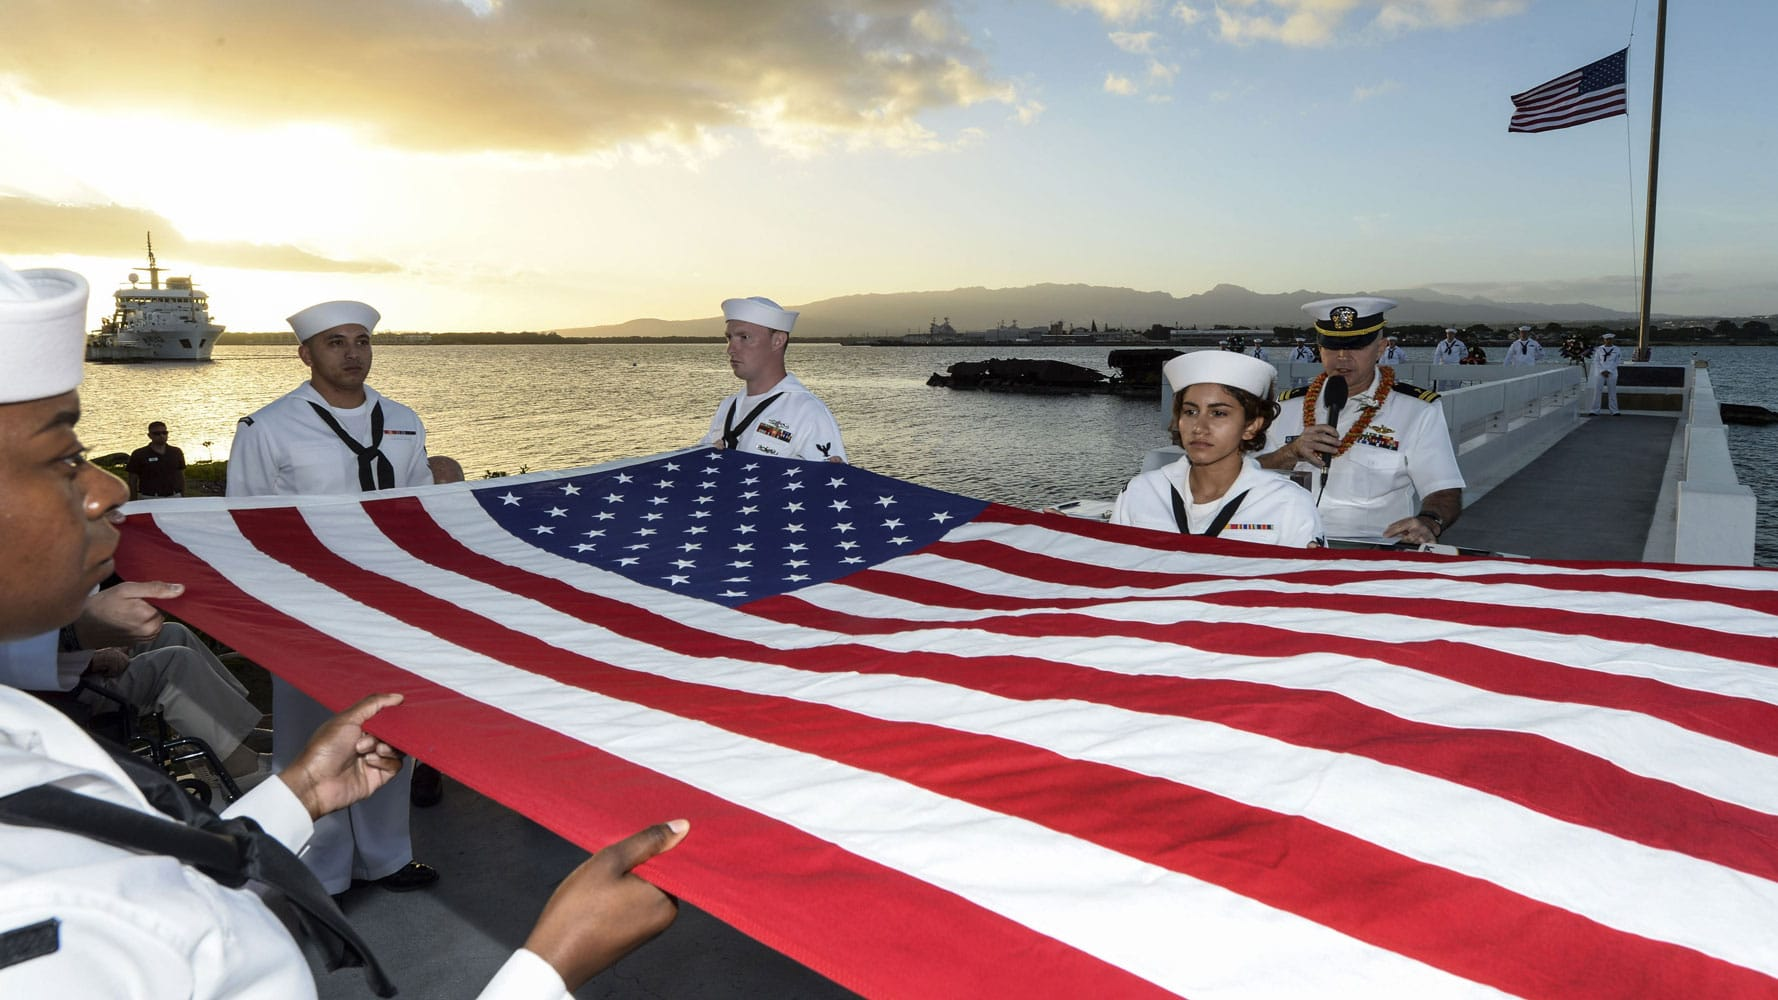 Sailors fold an American flag during a double interment as part of a ceremony at Joint Base Pearl Harbor-Hickam, Hawaii, Dec. 6, 2017, to mark the attacks on Pearl Harbor and Oahu.